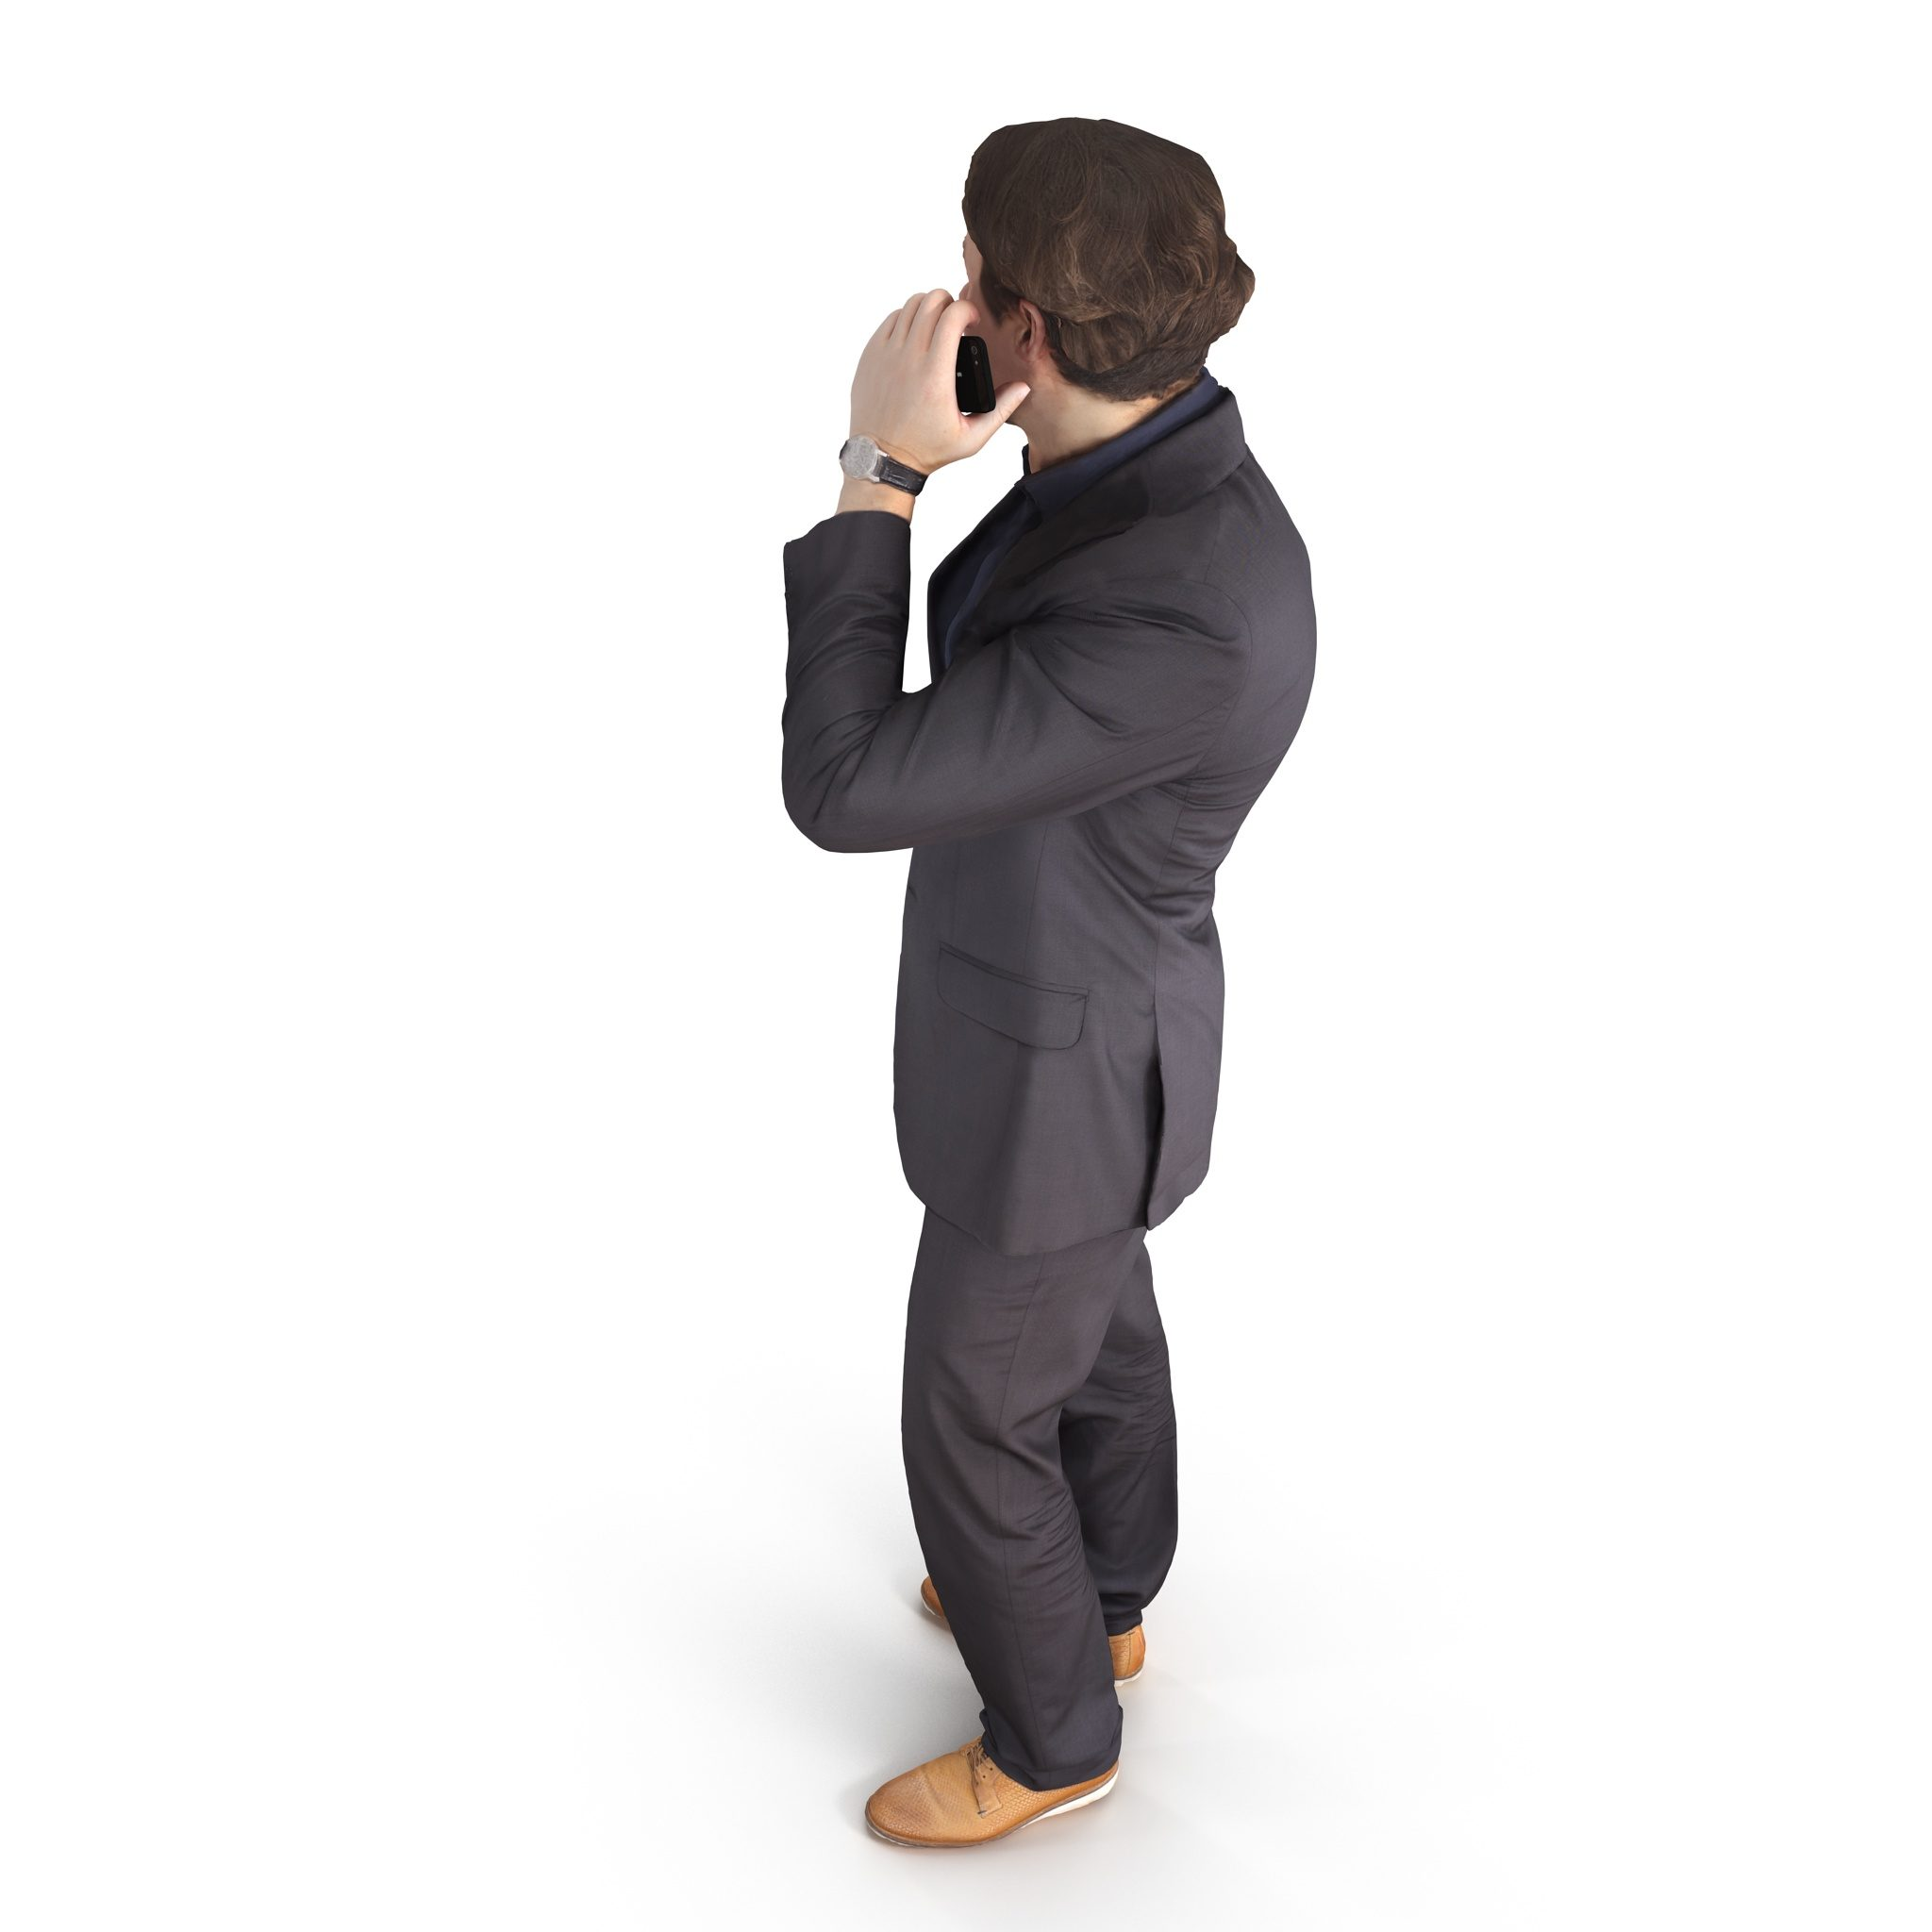 Businessman phone talking